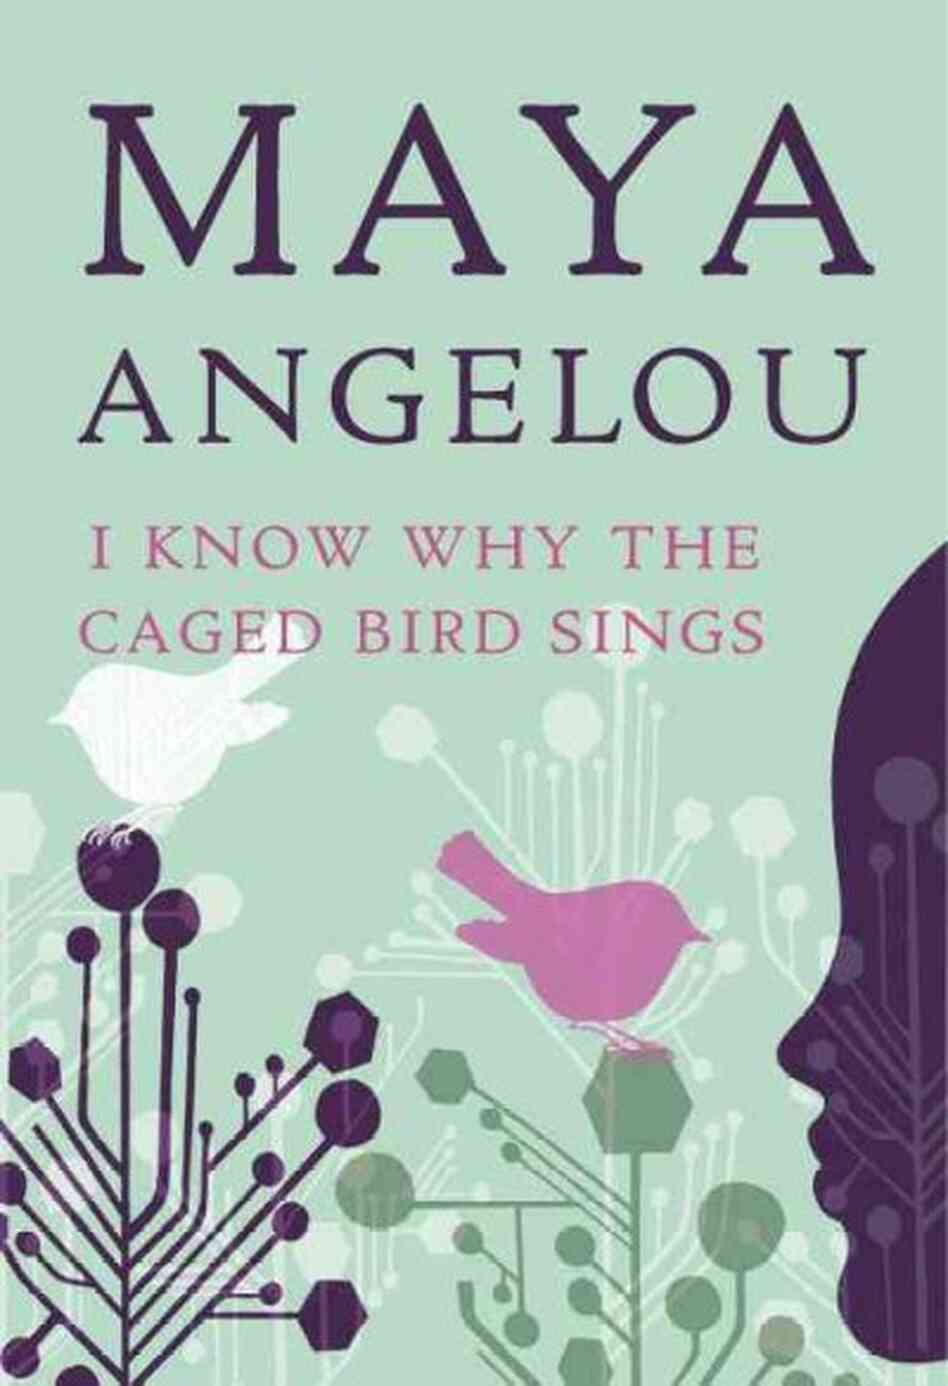 I know why the caged bird sings poem analysis